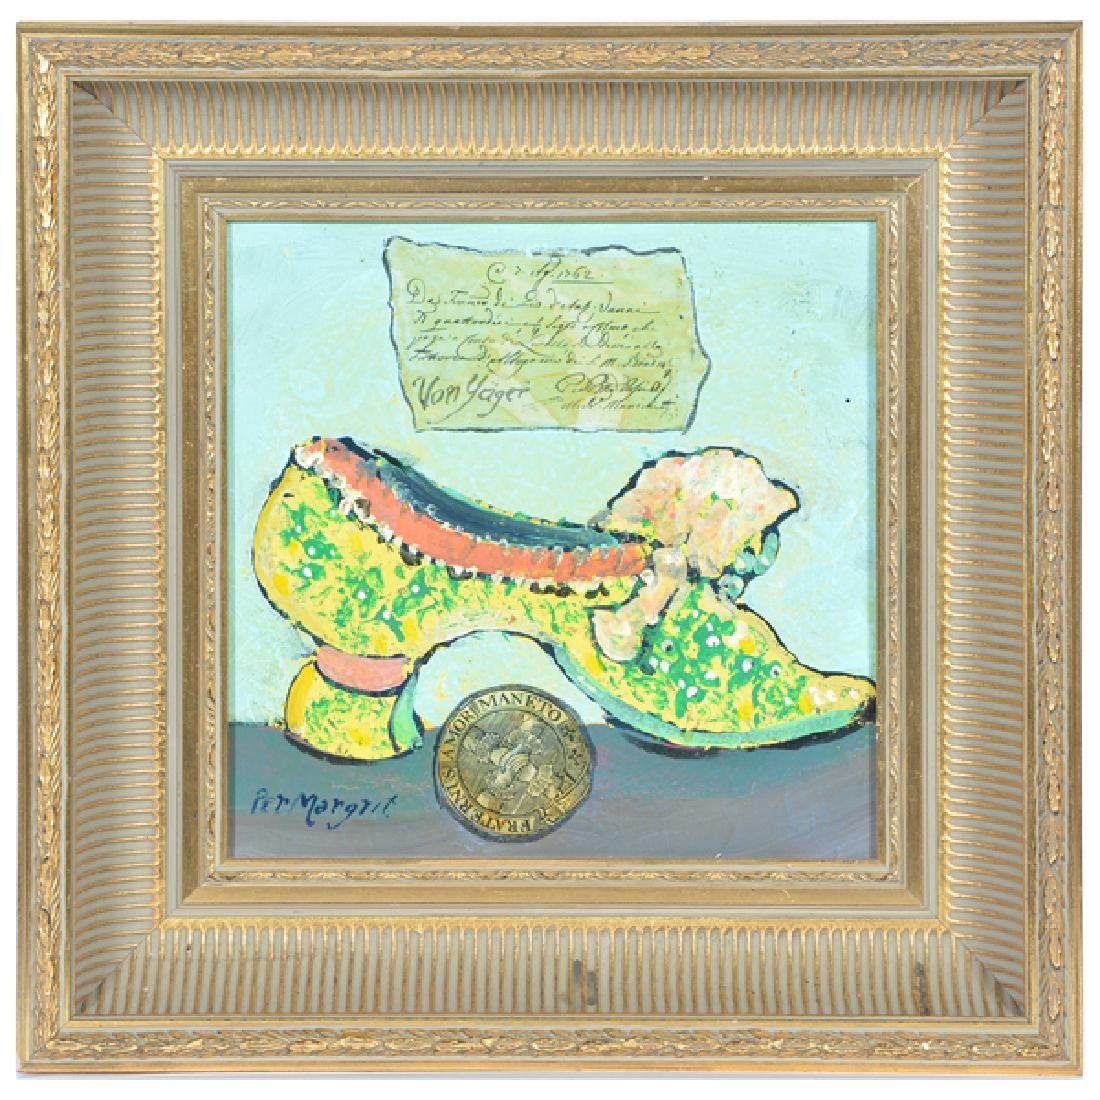 Ira Yeager, 18th c Italian Shoe, Oil/Collage